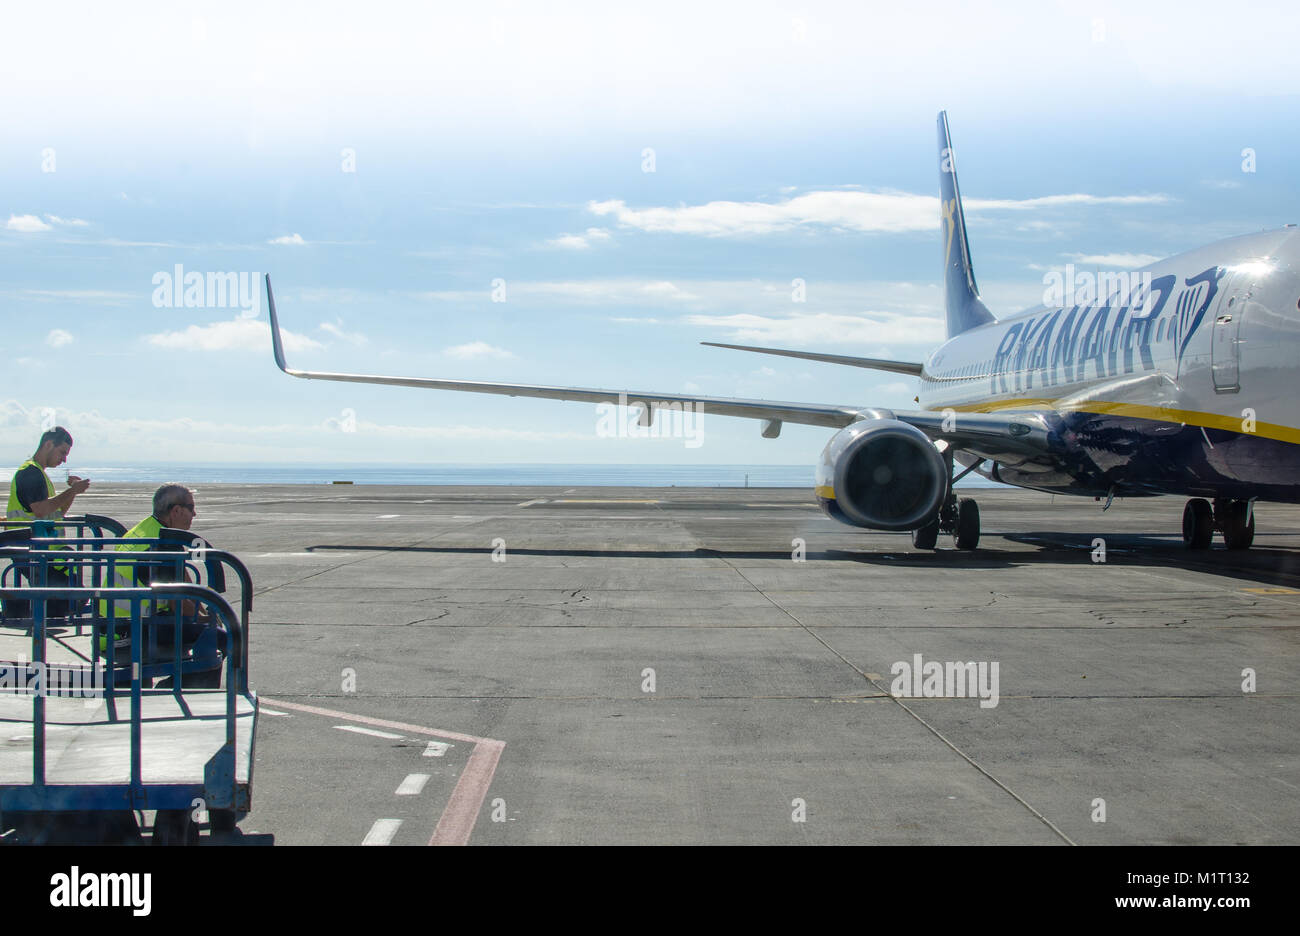 Baggage handlers wait on a taxiing Ryanair Boeing 737 at Tenerife-South Airport, Canary Islands, Spain - Stock Image